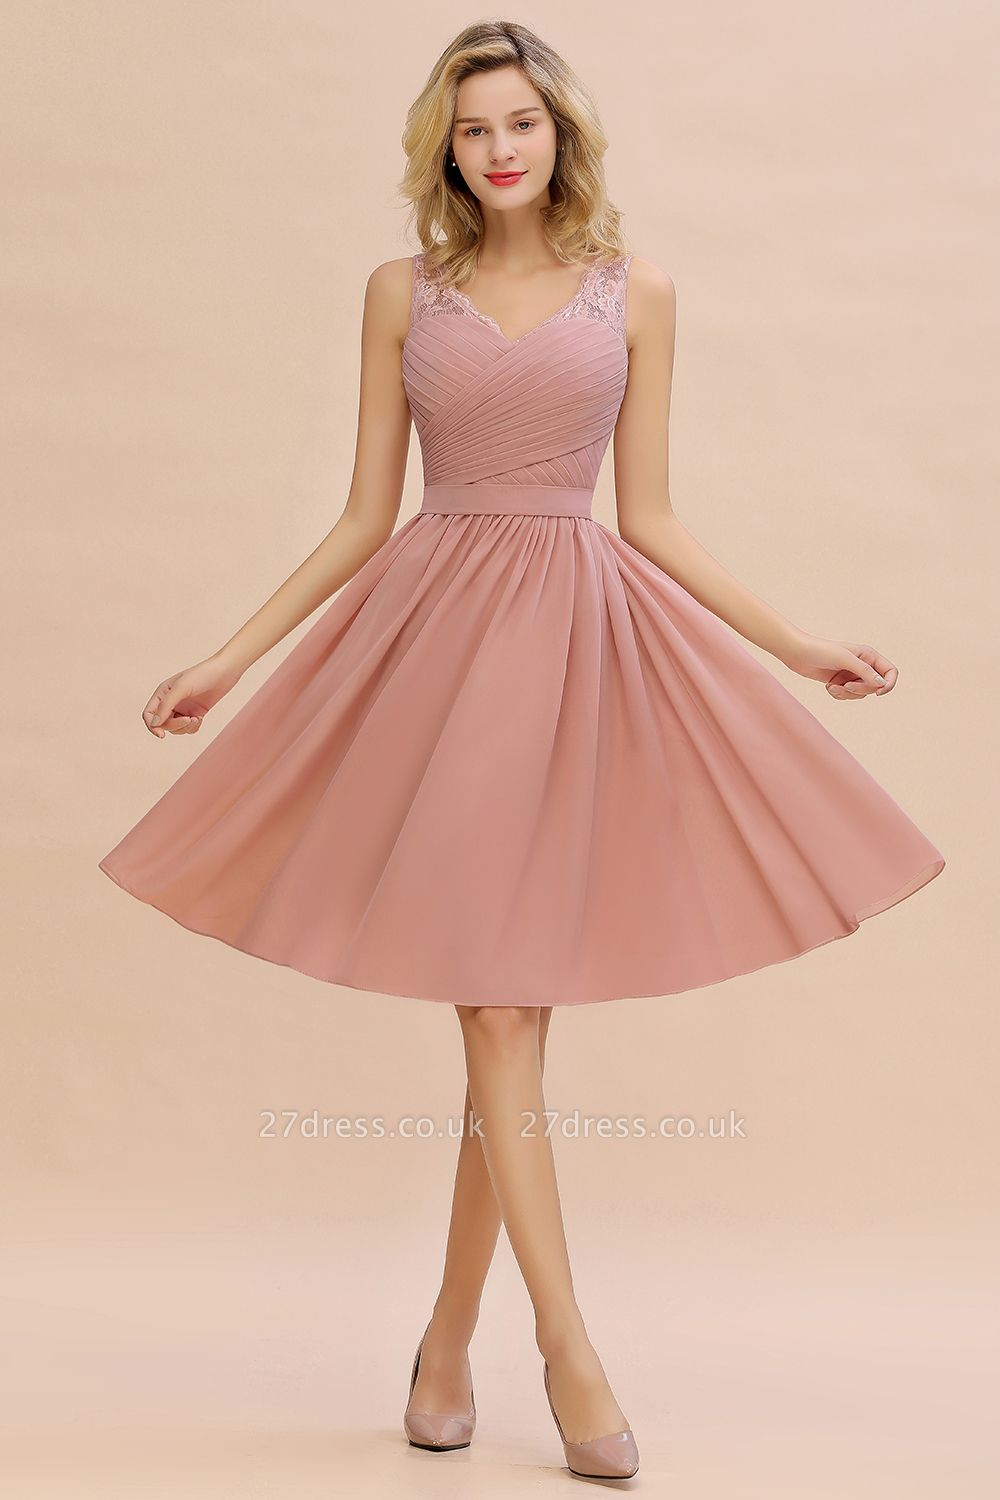 Lace Short Homecoming Dresses with Belt |  Sleeveless  Pink Cheap Party Dress UK